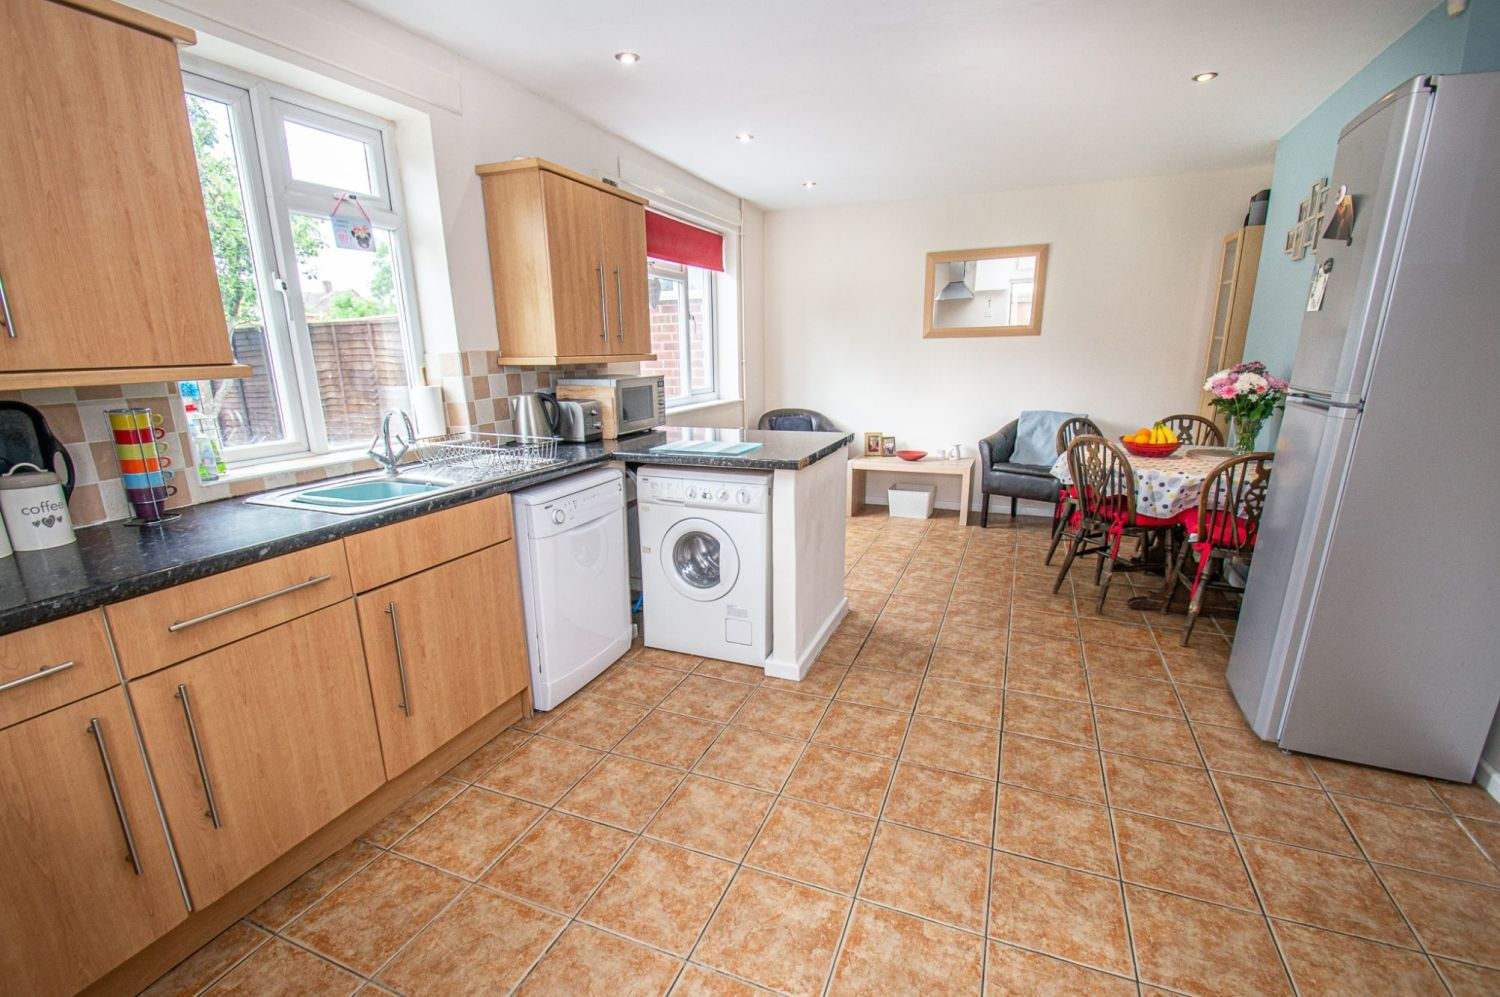 3 bed semi-detached for sale in Gauden Road, Wollescote 4